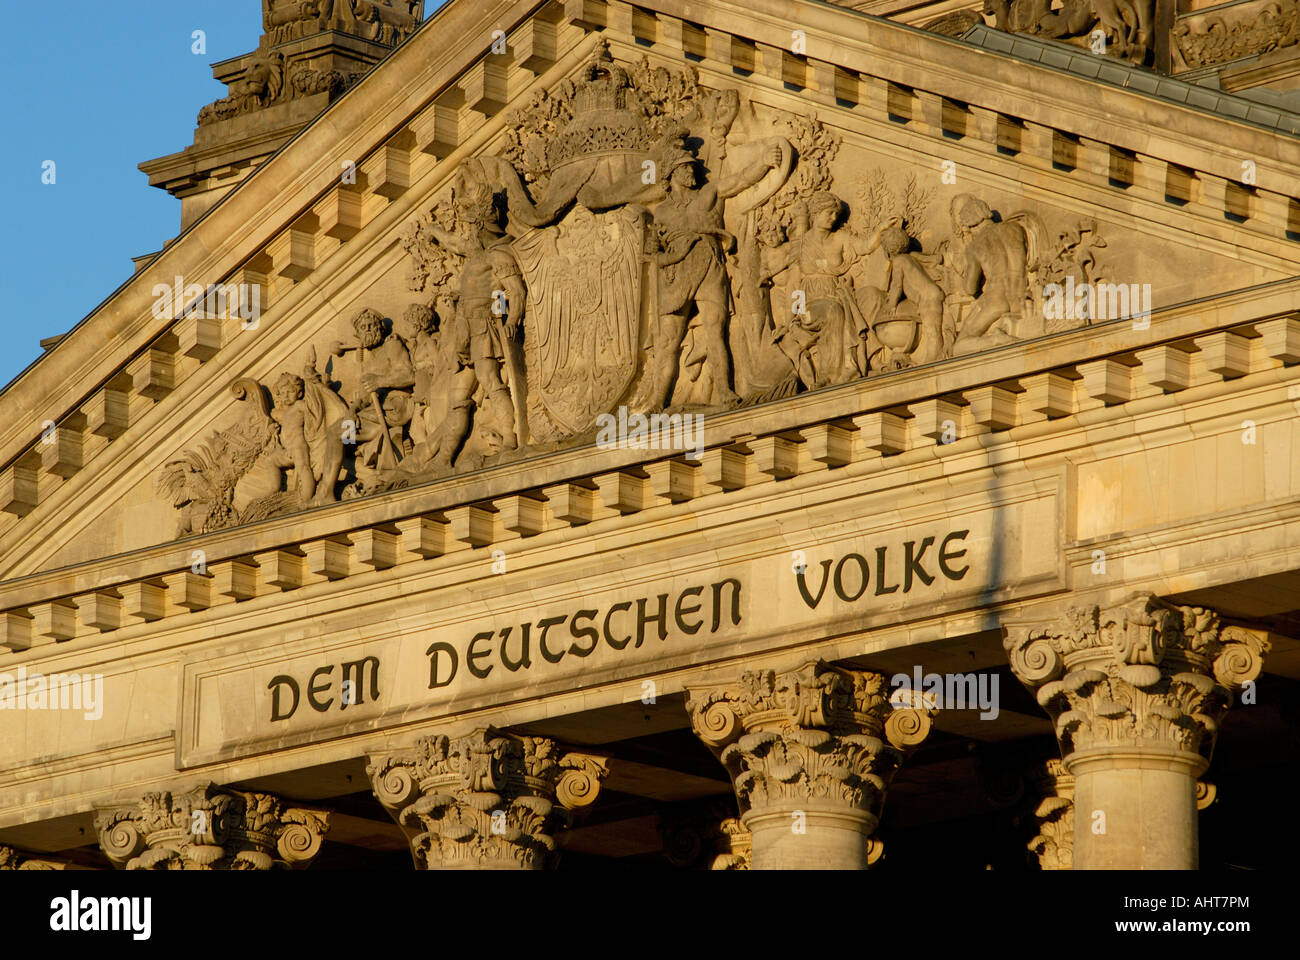 Inscription on front of Berlin Reichstag - Stock Image